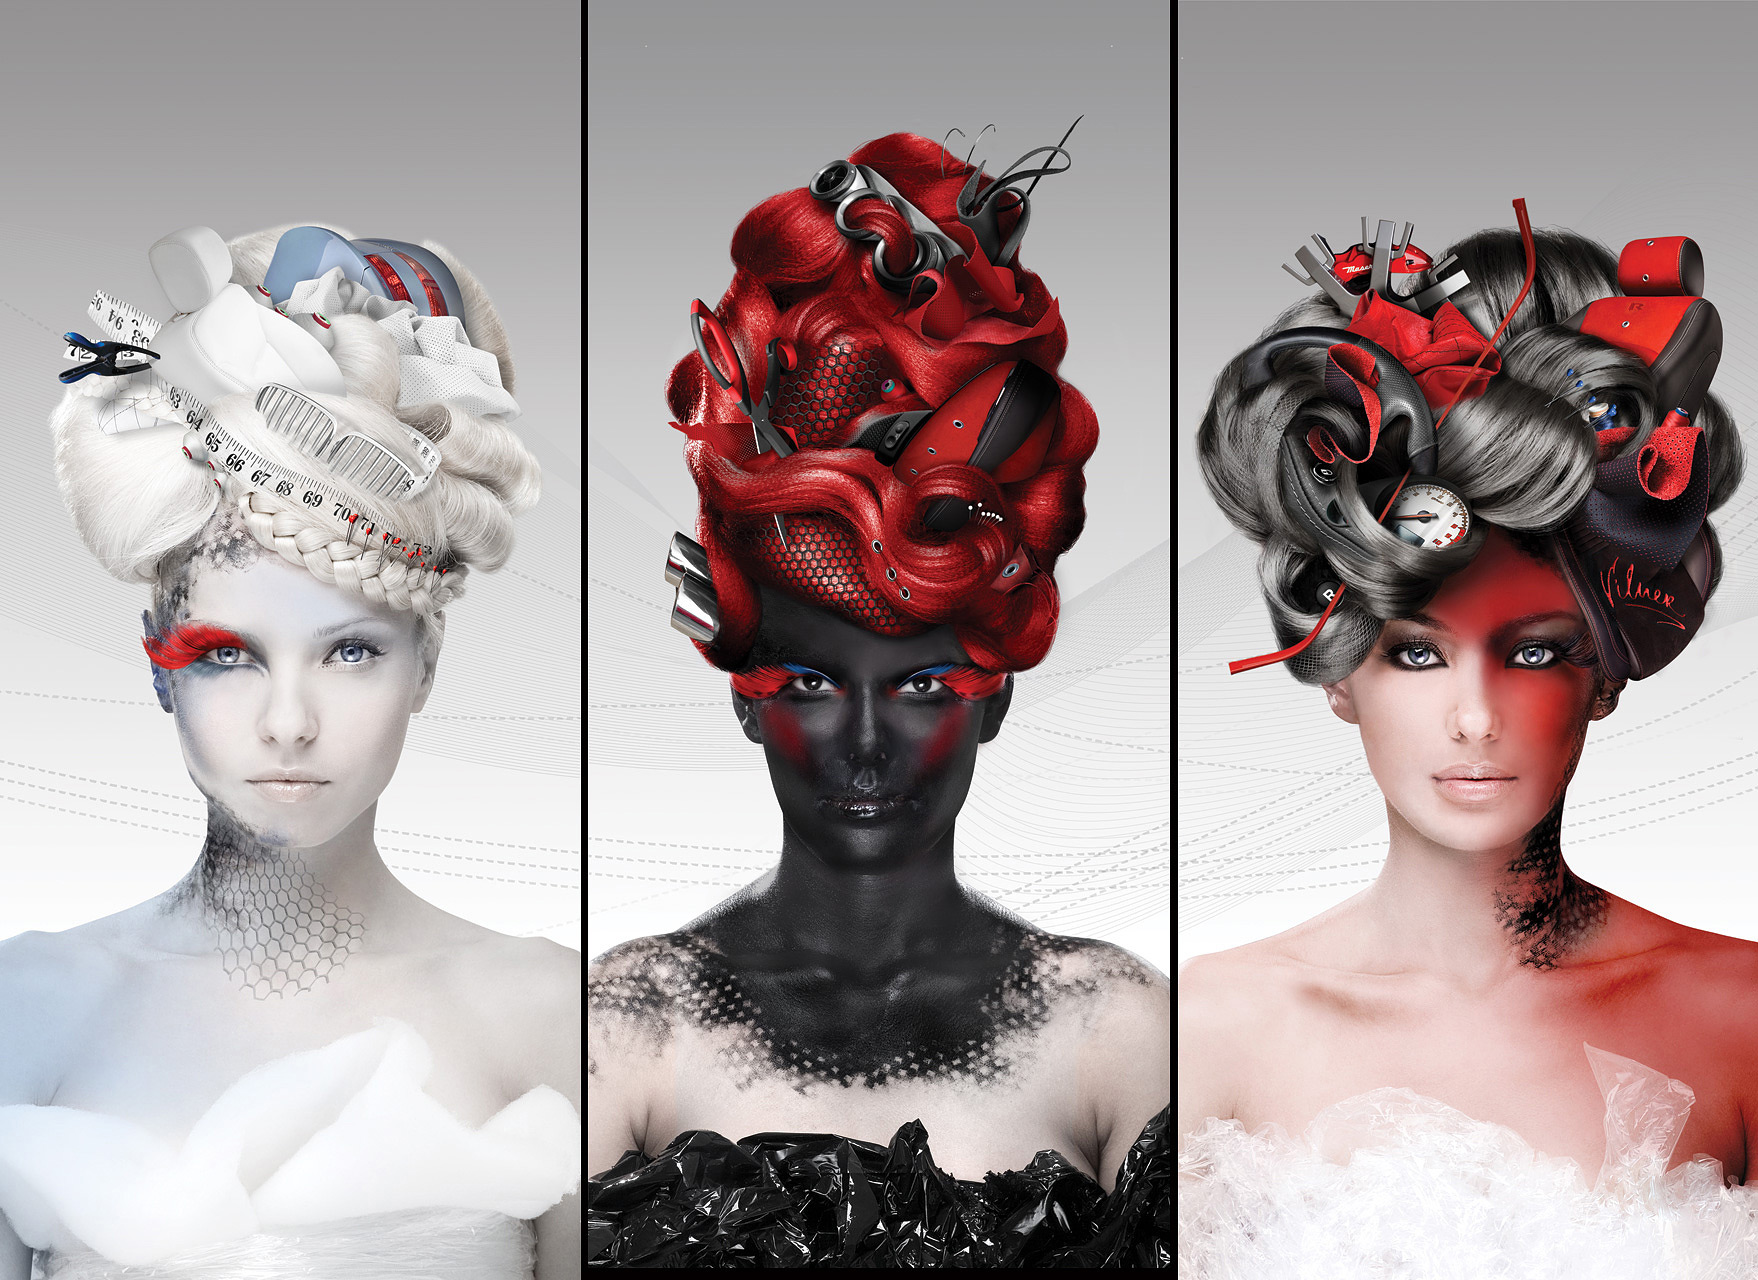 Vilner creative advertising | Advertising photography for Creative Photography Posters  284dqh